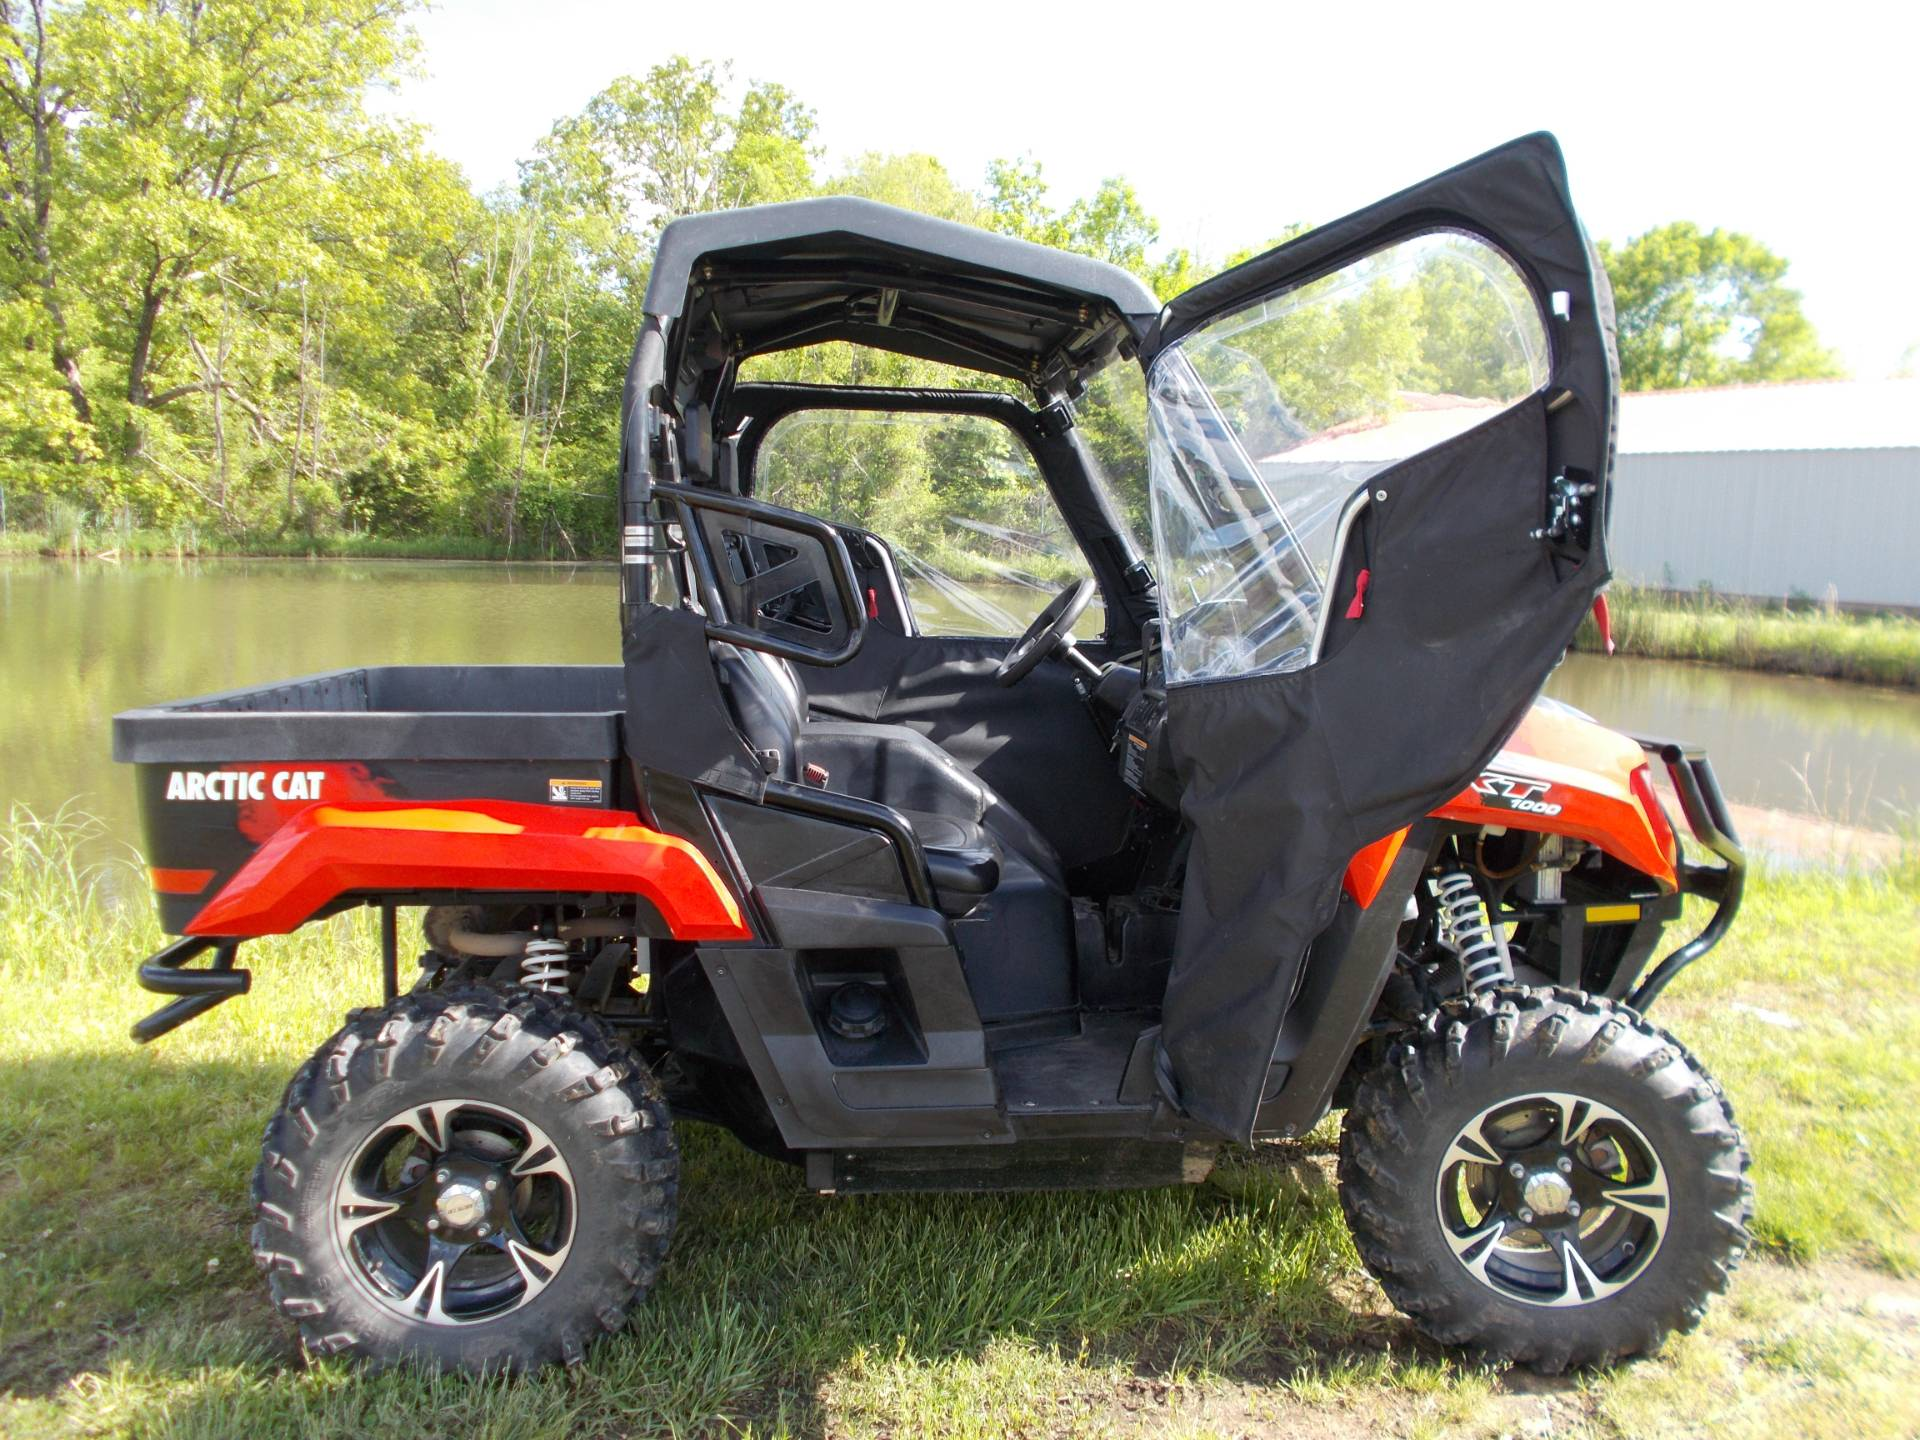 2015 Arctic Cat PROWLER 1000 XTZ WITH ALL THE EXTRAS in West Plains, Missouri - Photo 2